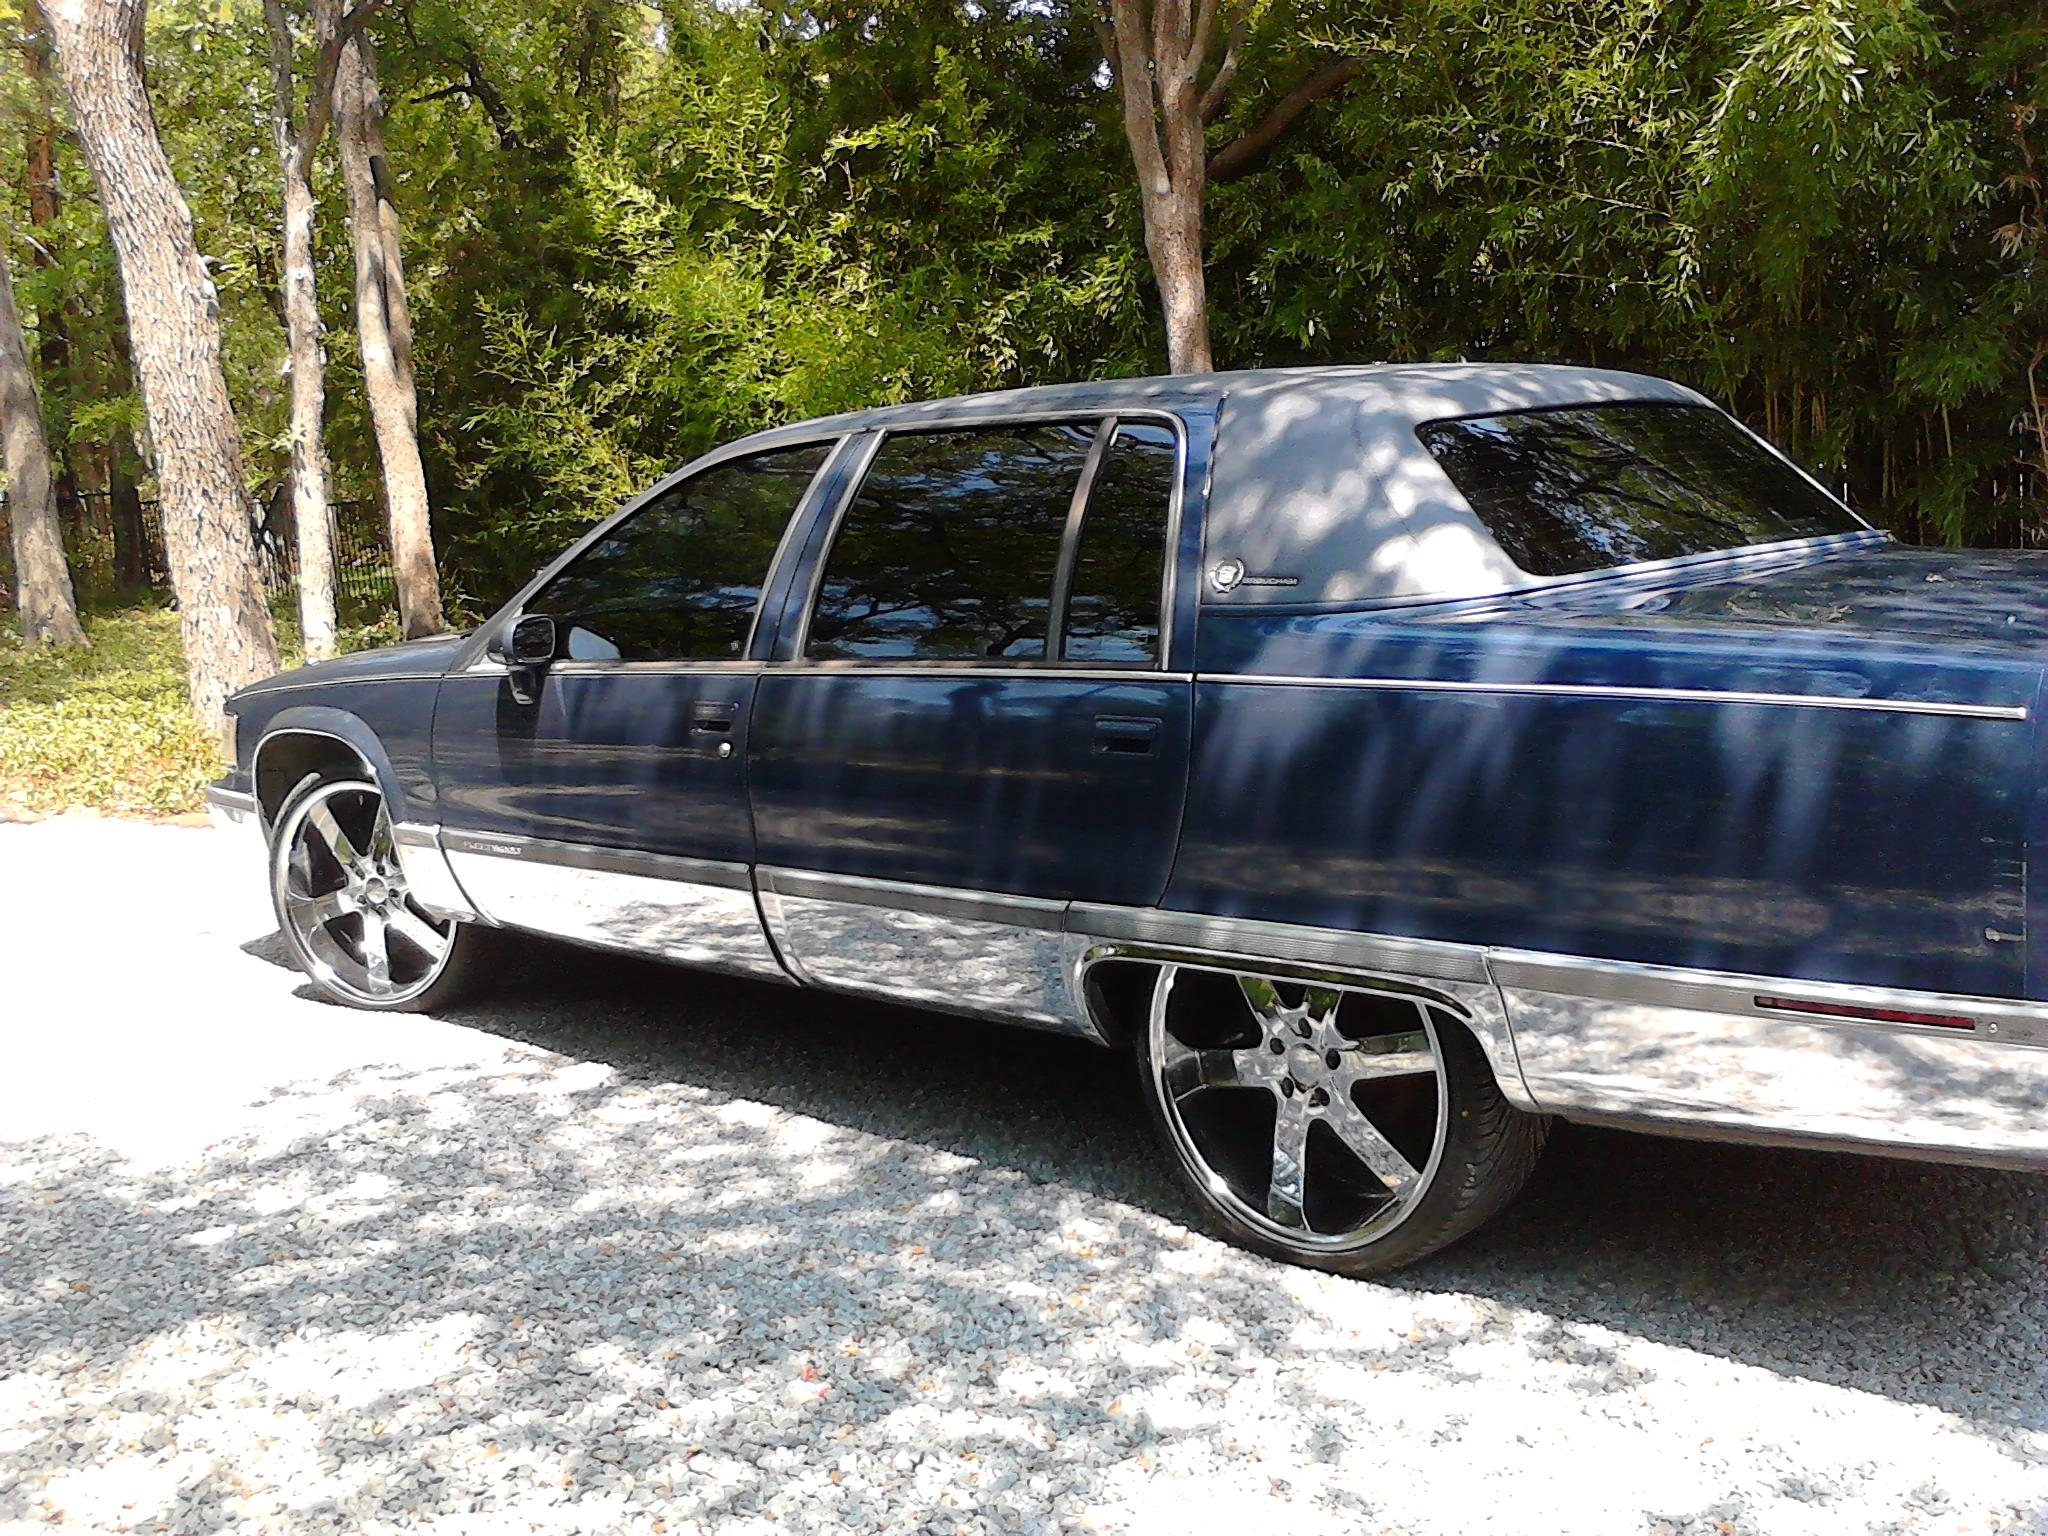 214txcvlx 39 s 1994 cadillac fleetwood in dallas tx. Cars Review. Best American Auto & Cars Review